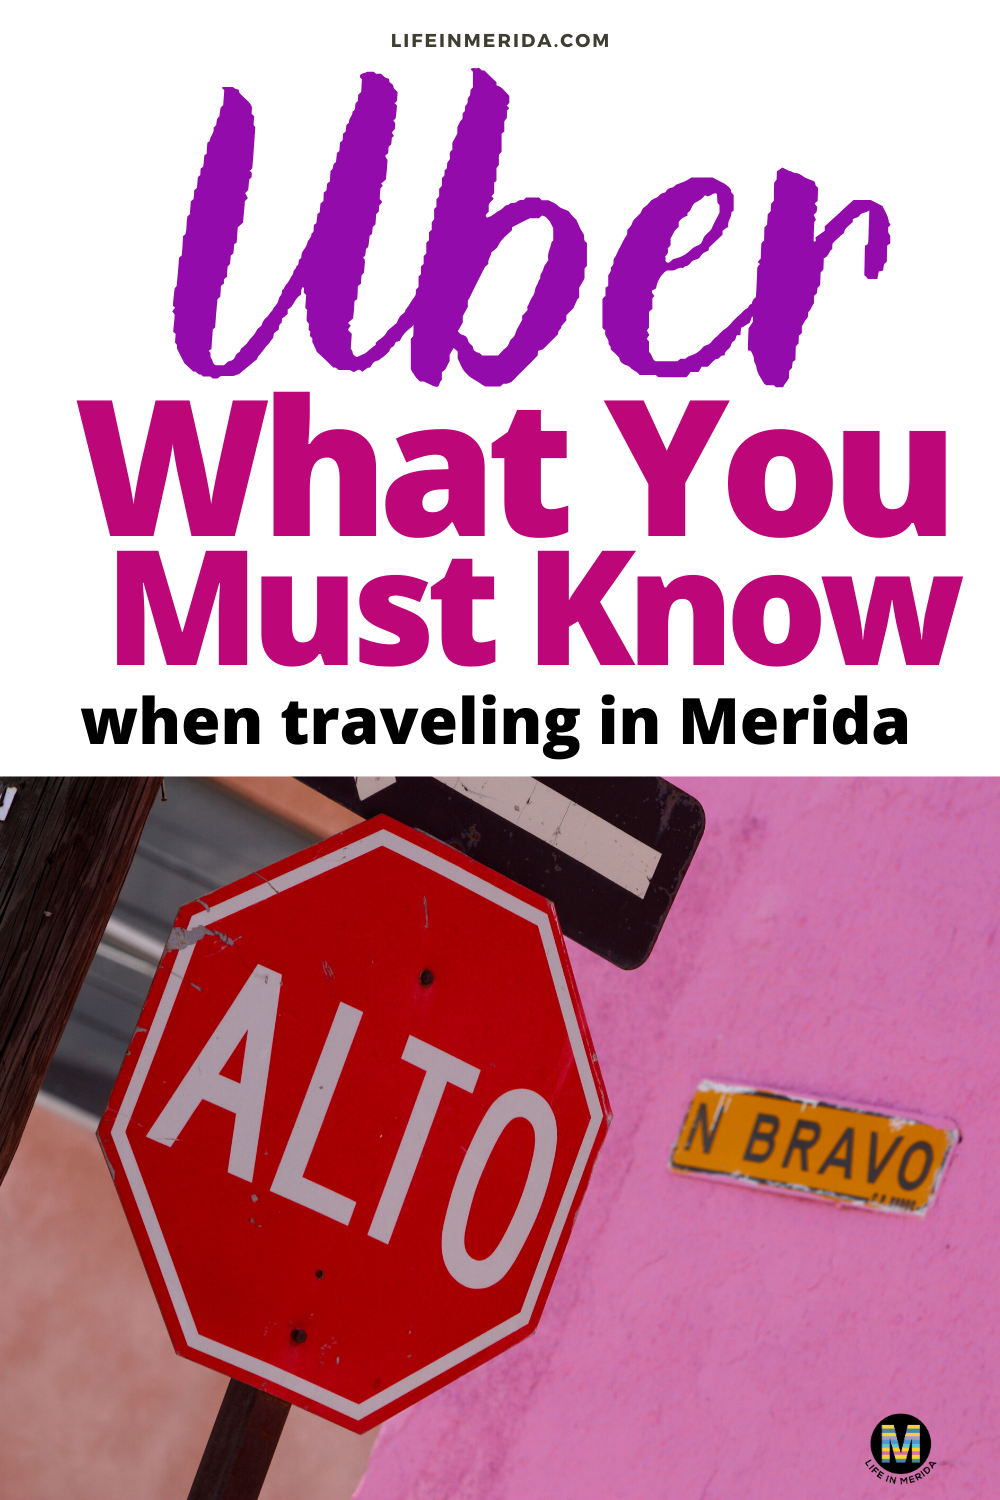 Is there Uber in Mérida?